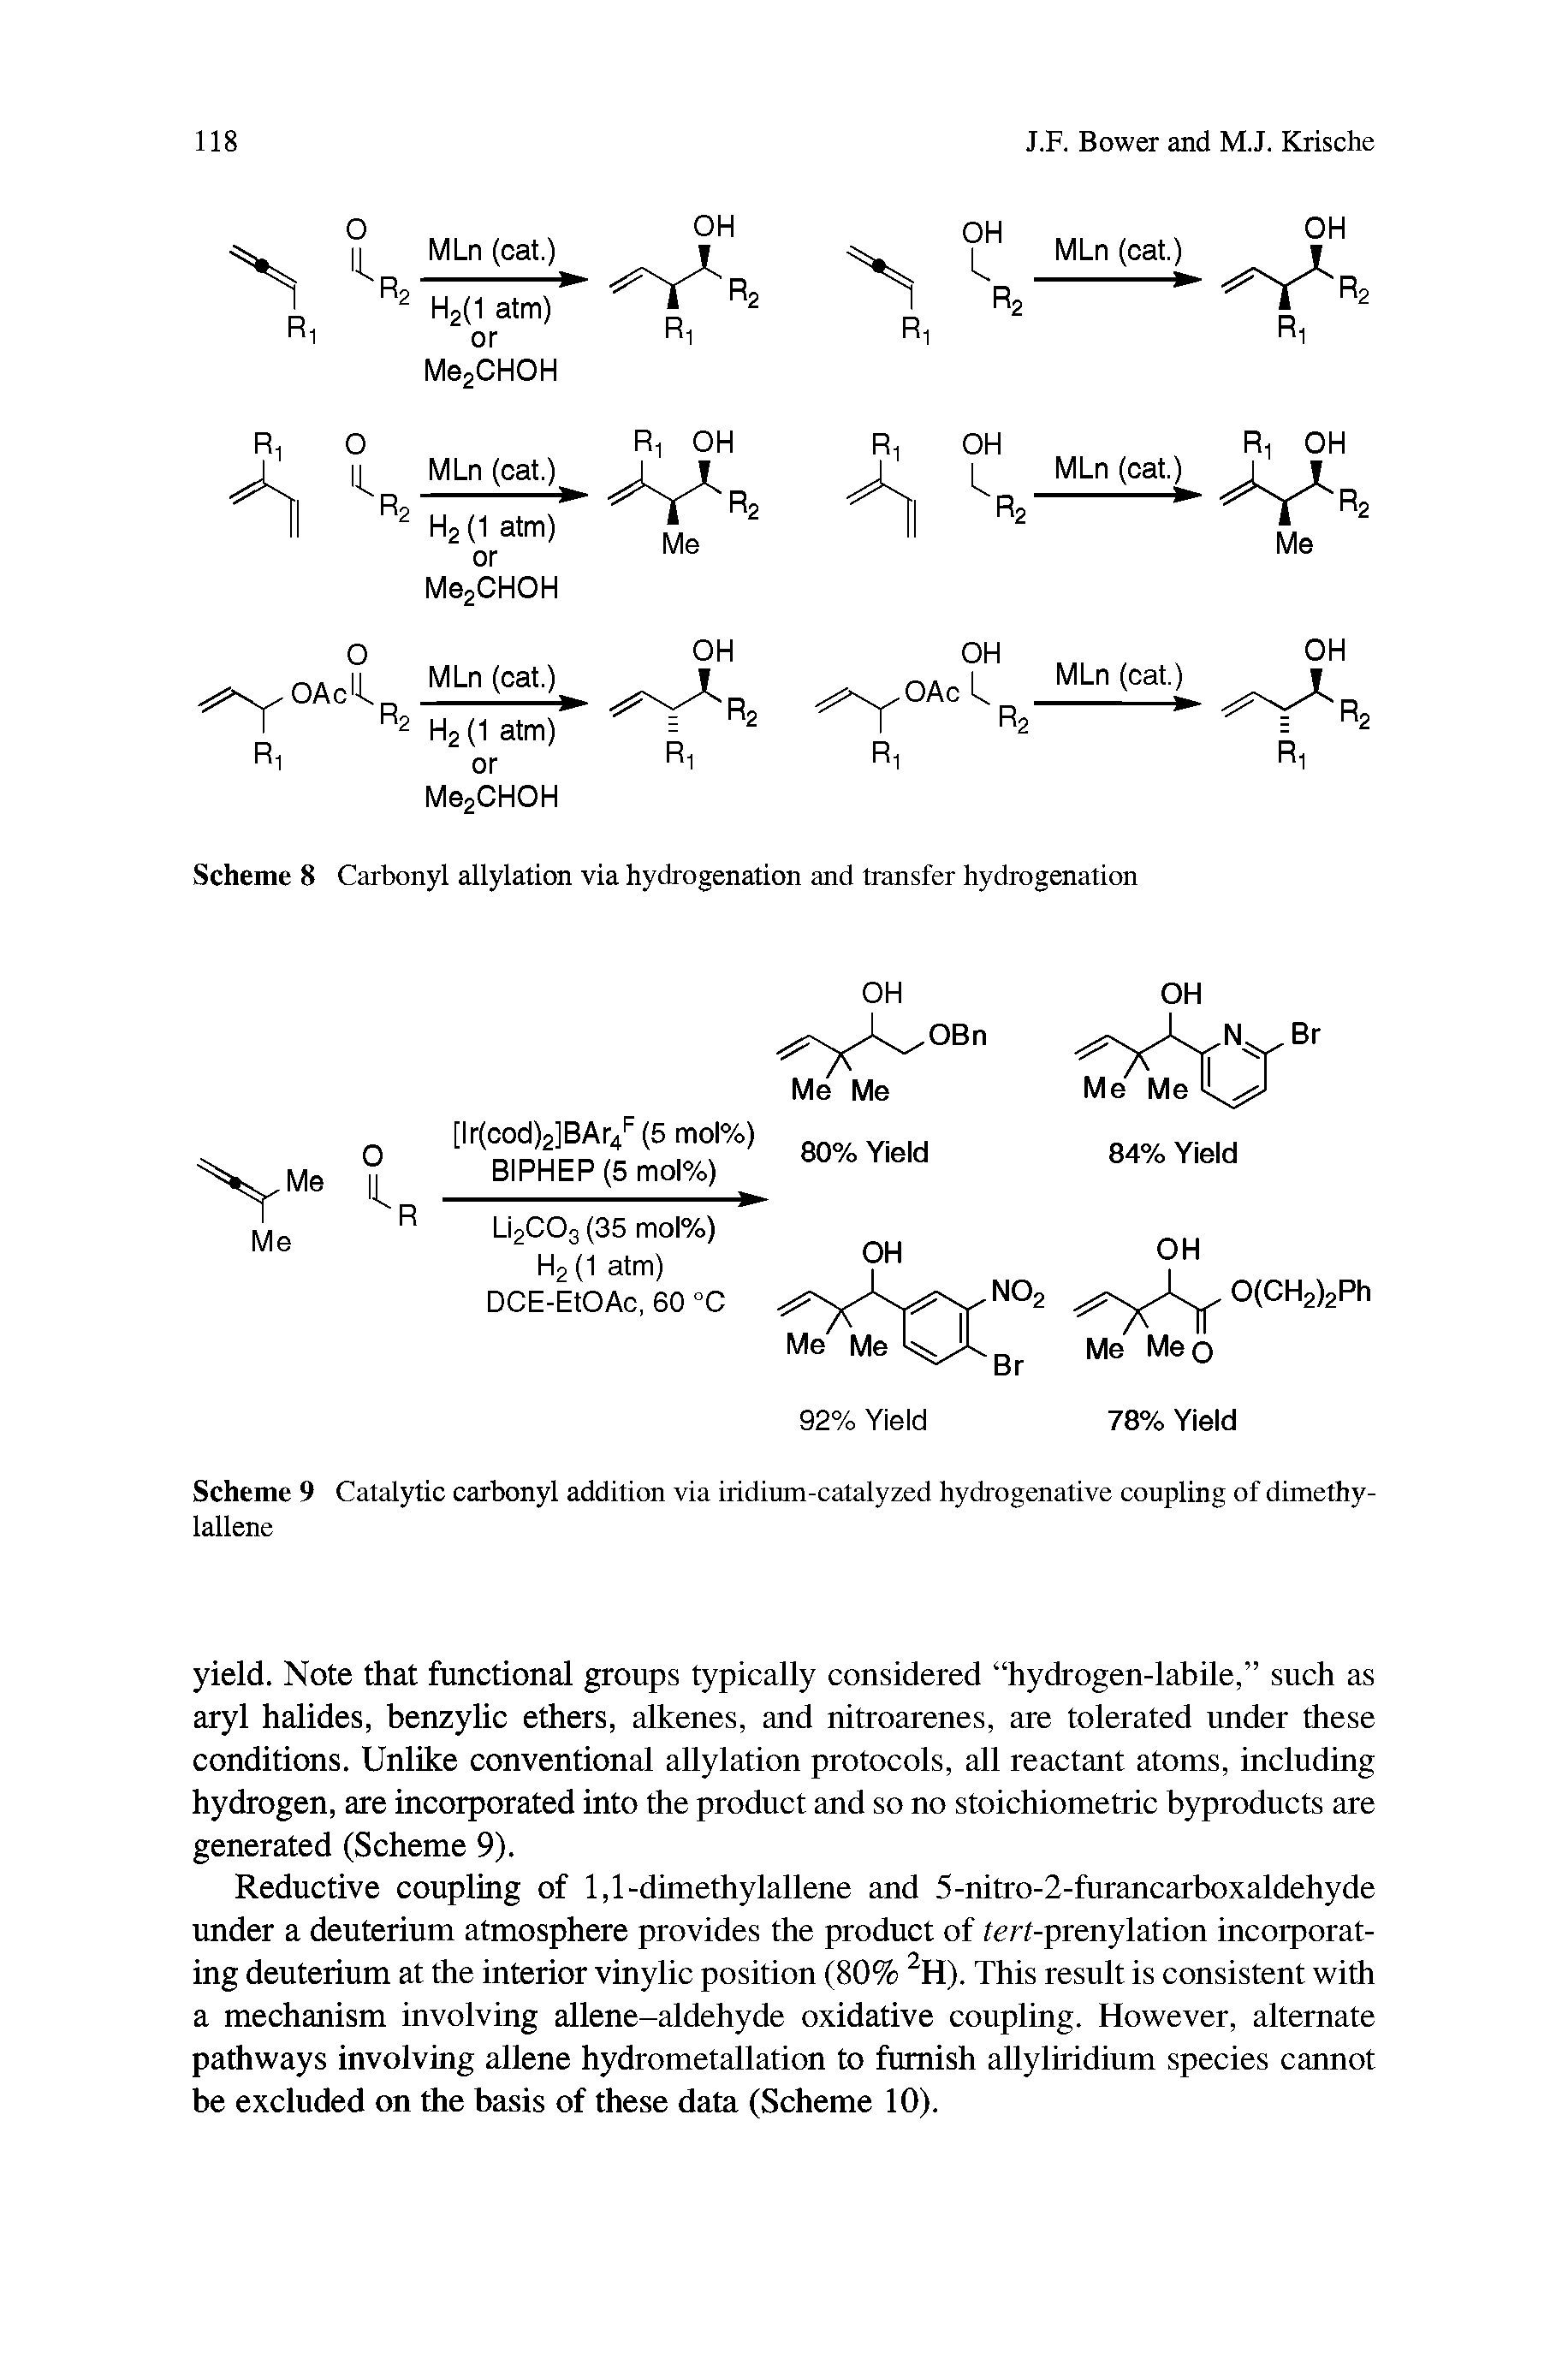 "Scheme 8 <a href=""/info/carbonyl_allylations"">Carbonyl allylation</a> via hydrogenation and transfer hydrogenation"